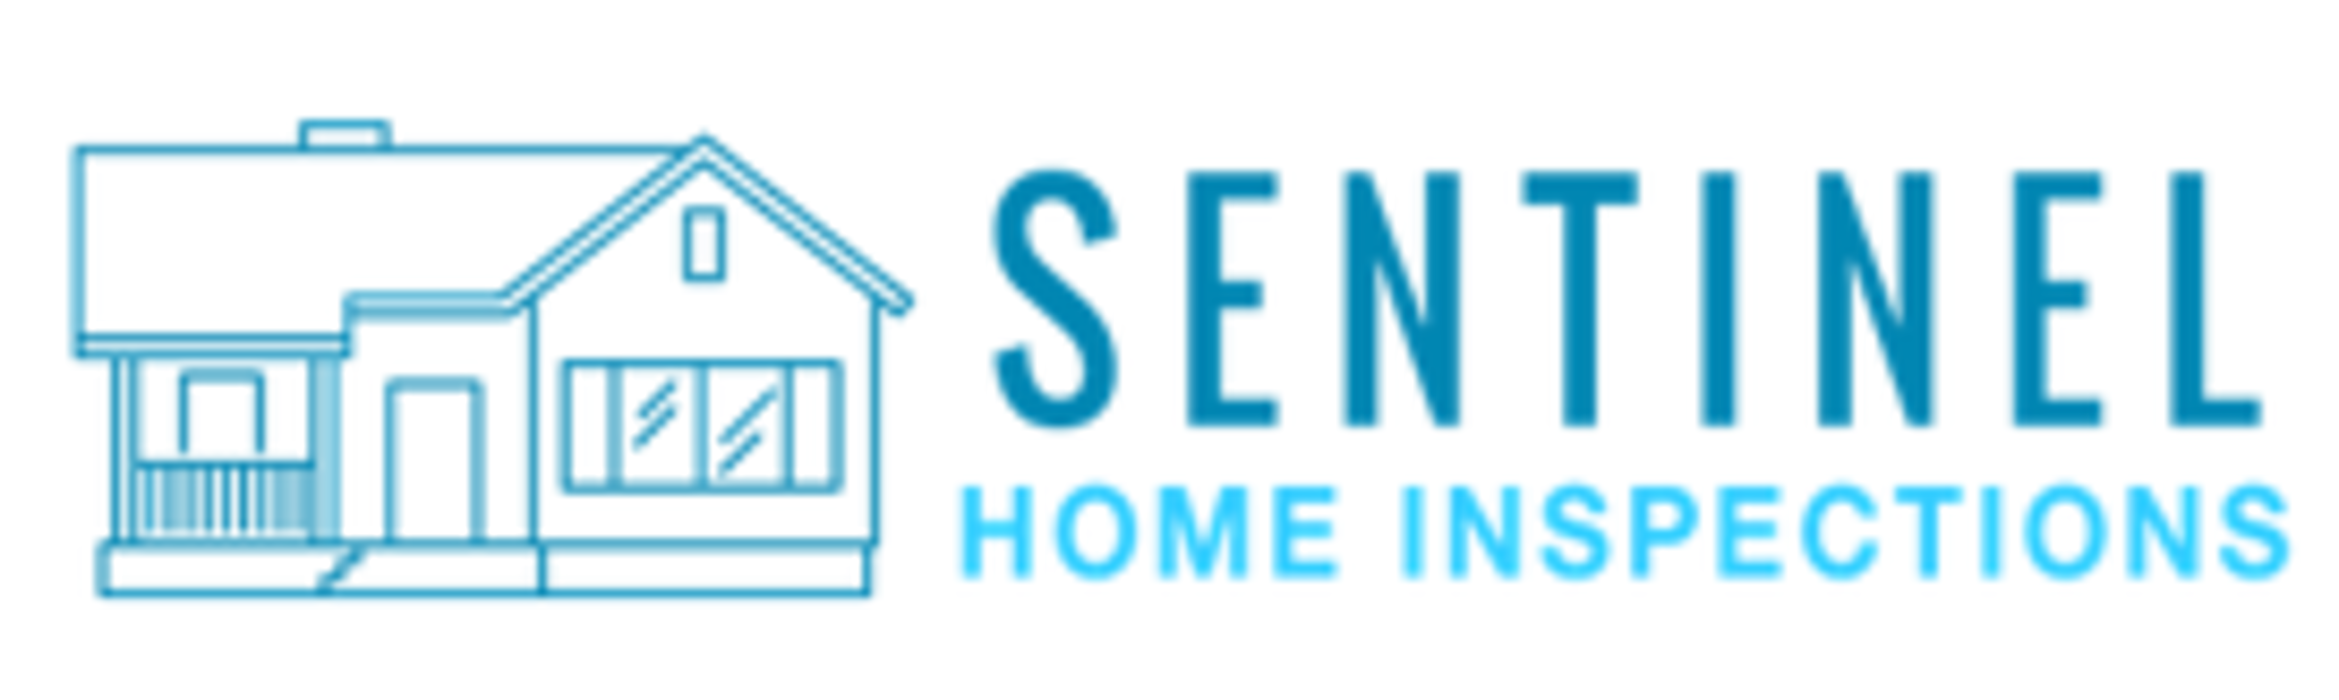 Sentinel Home Inspections - Temple, TX